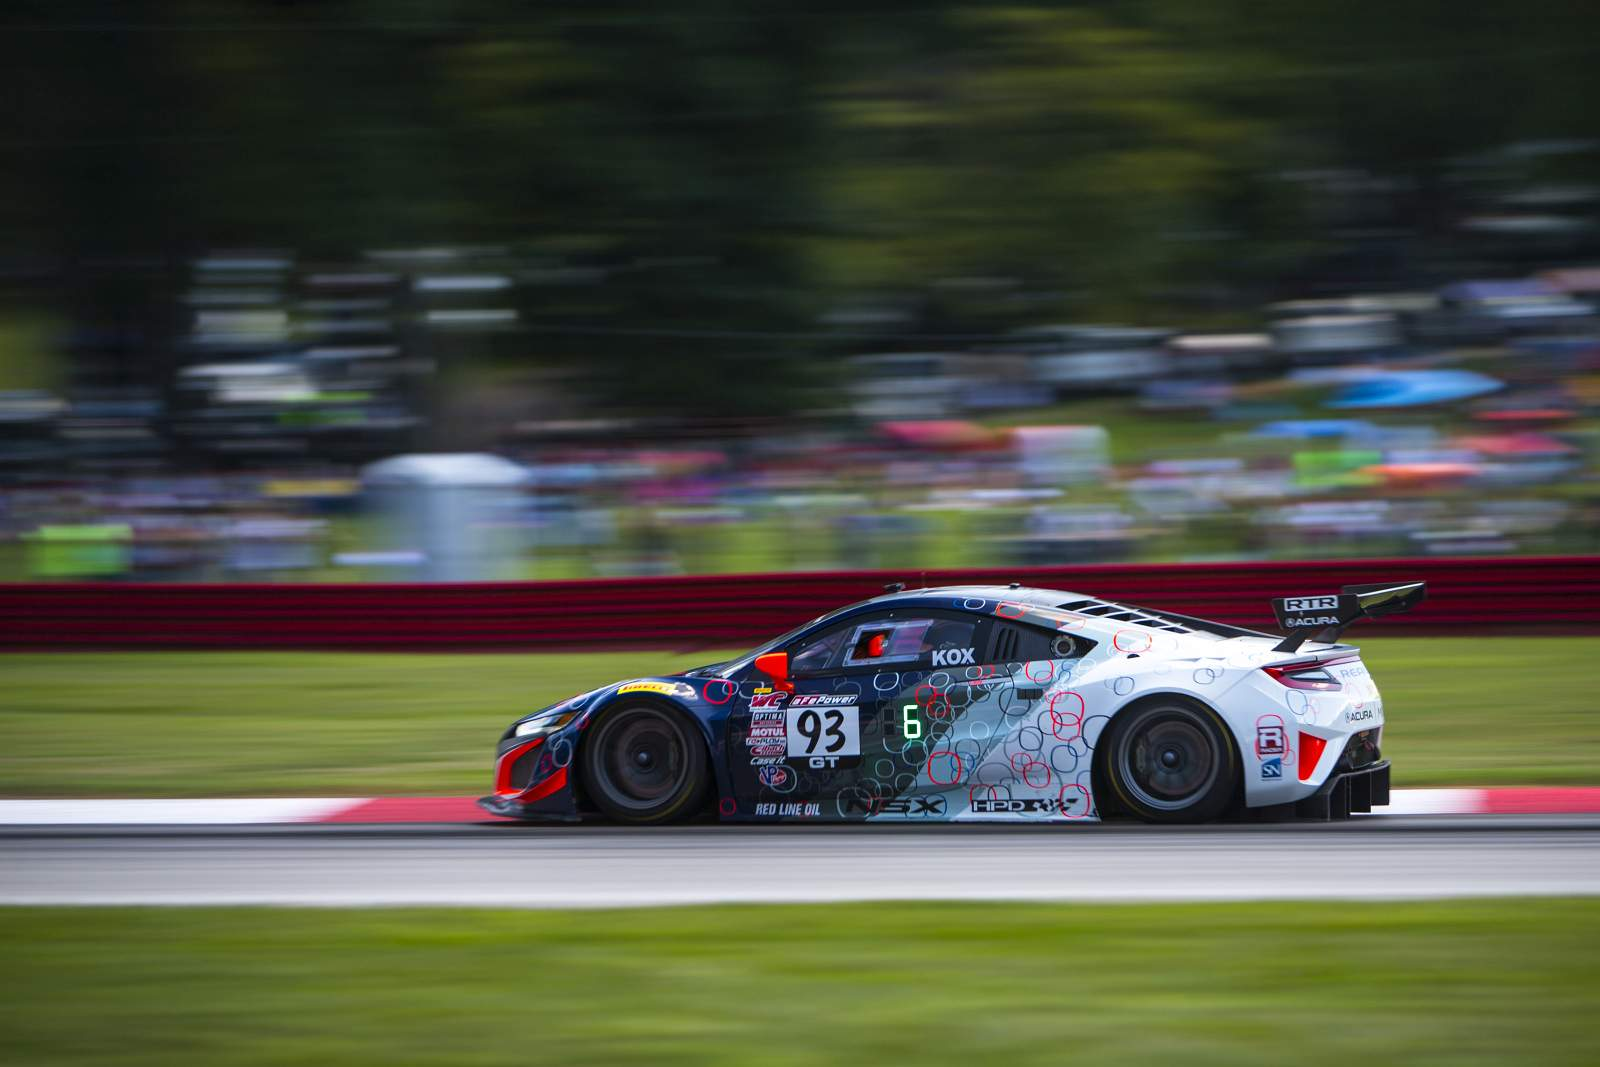 peter-kox-realtime-racing-pirelli-world-challenge-mid-ohio-116